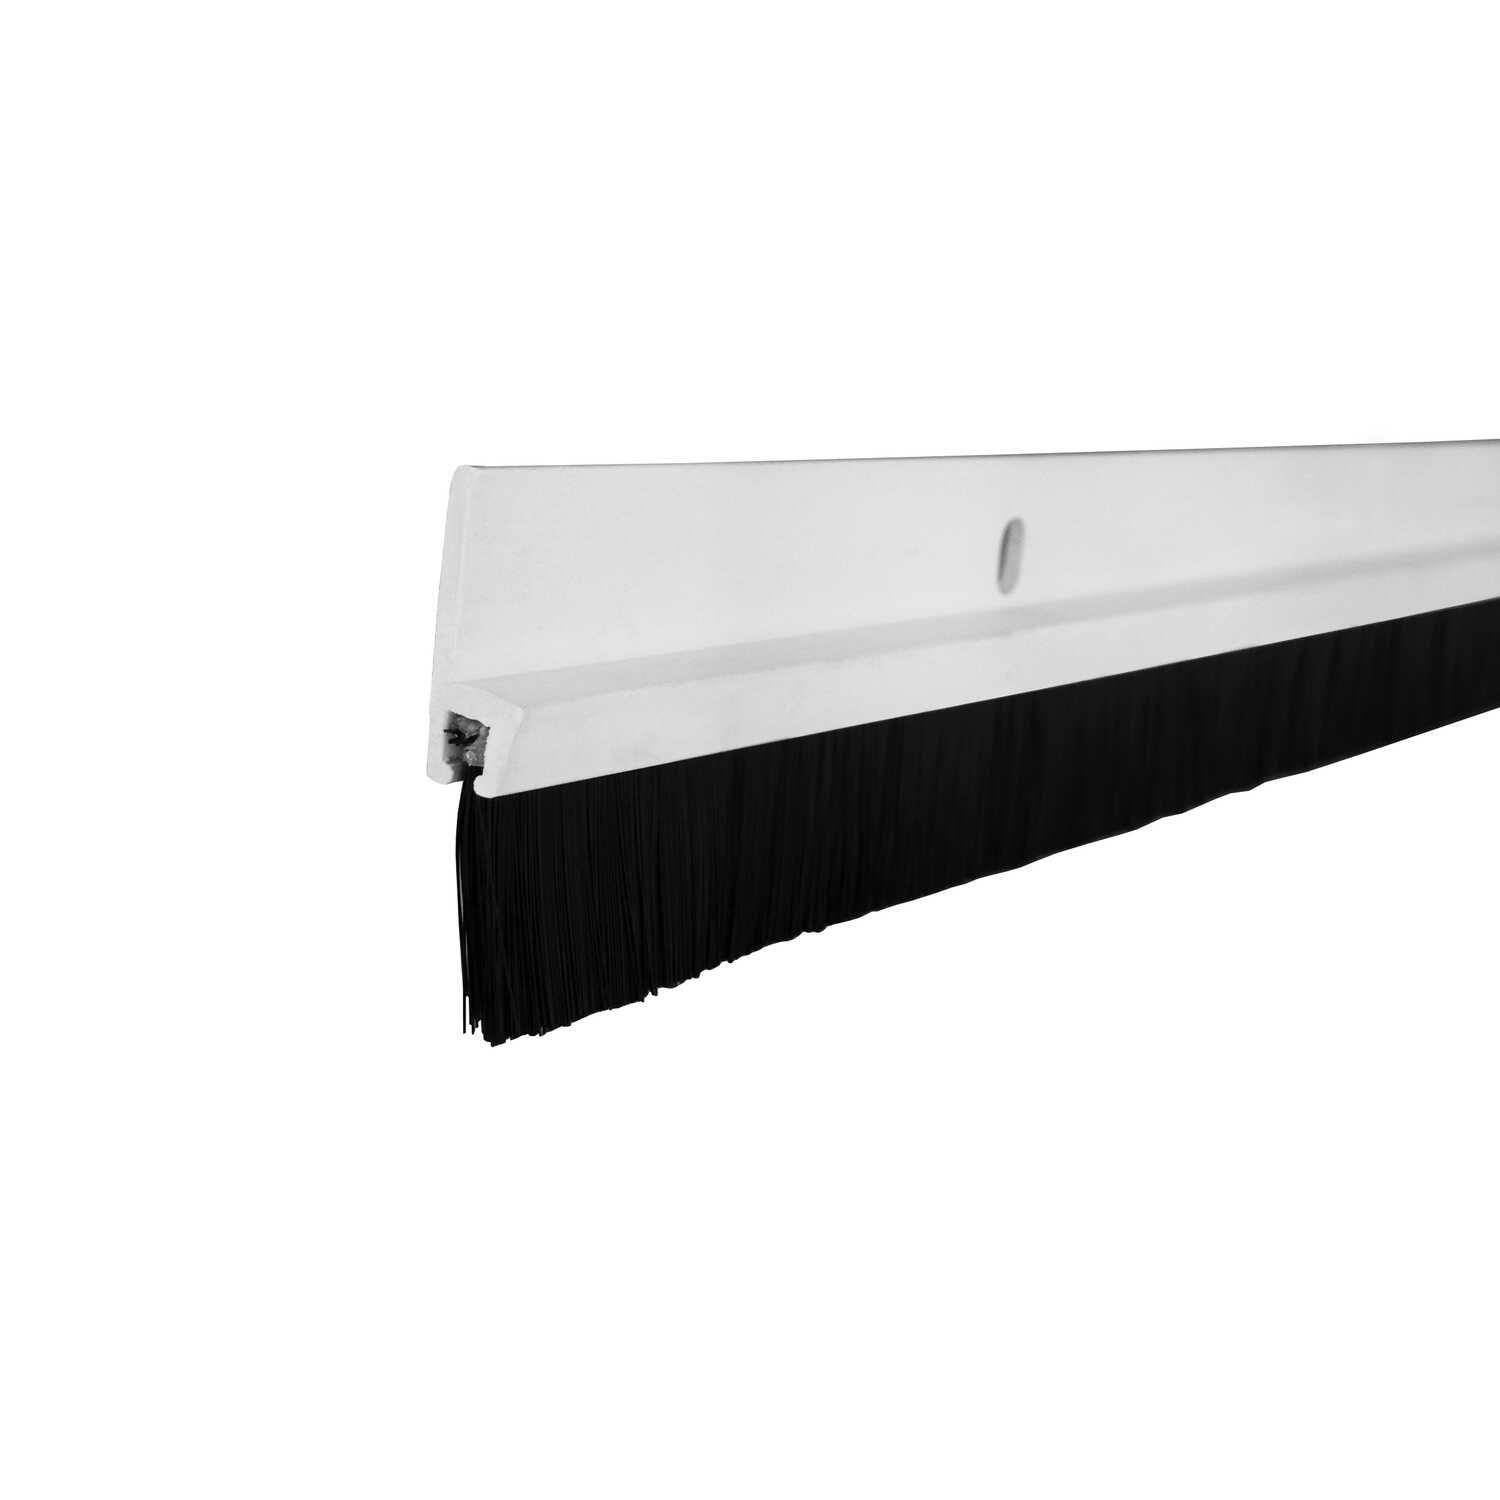 M-D Building Products  White  Plastic  Door Sweep  1-3/4 in.  x 3 ft. L For Door Bottom